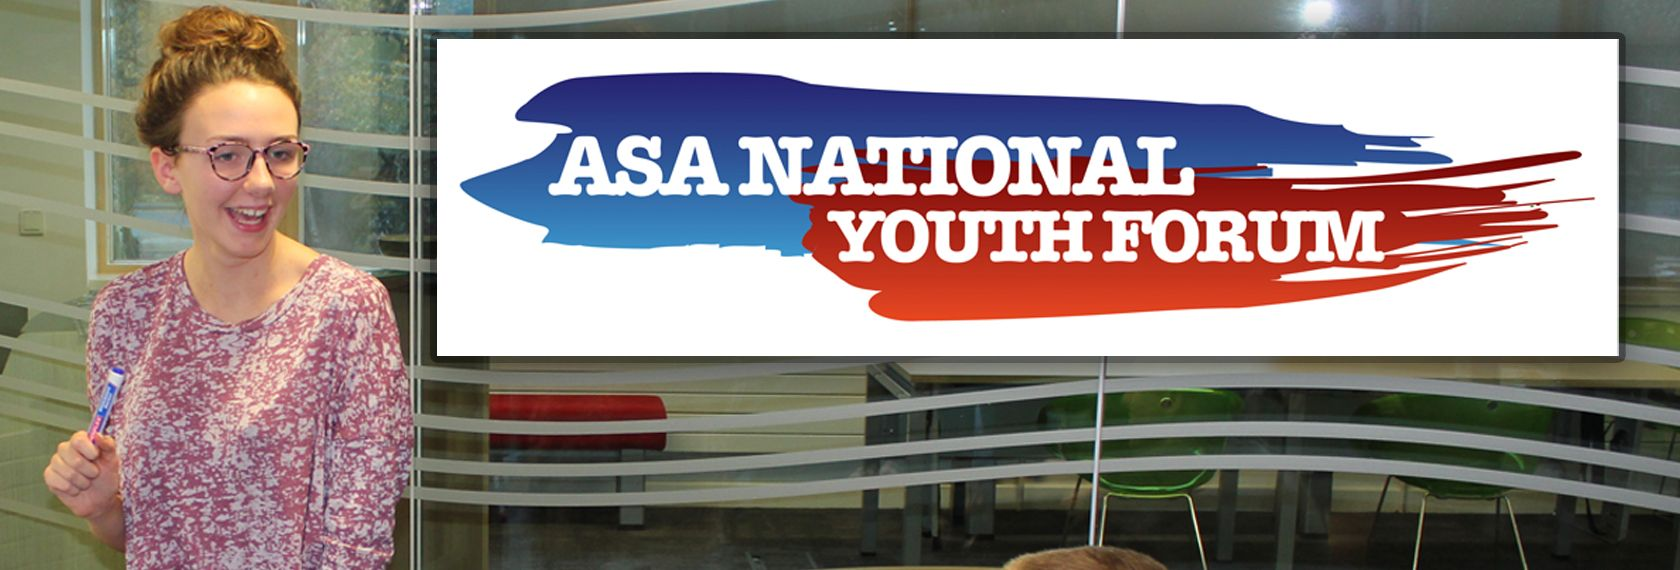 ASA_National_Youth_Forum.jpg